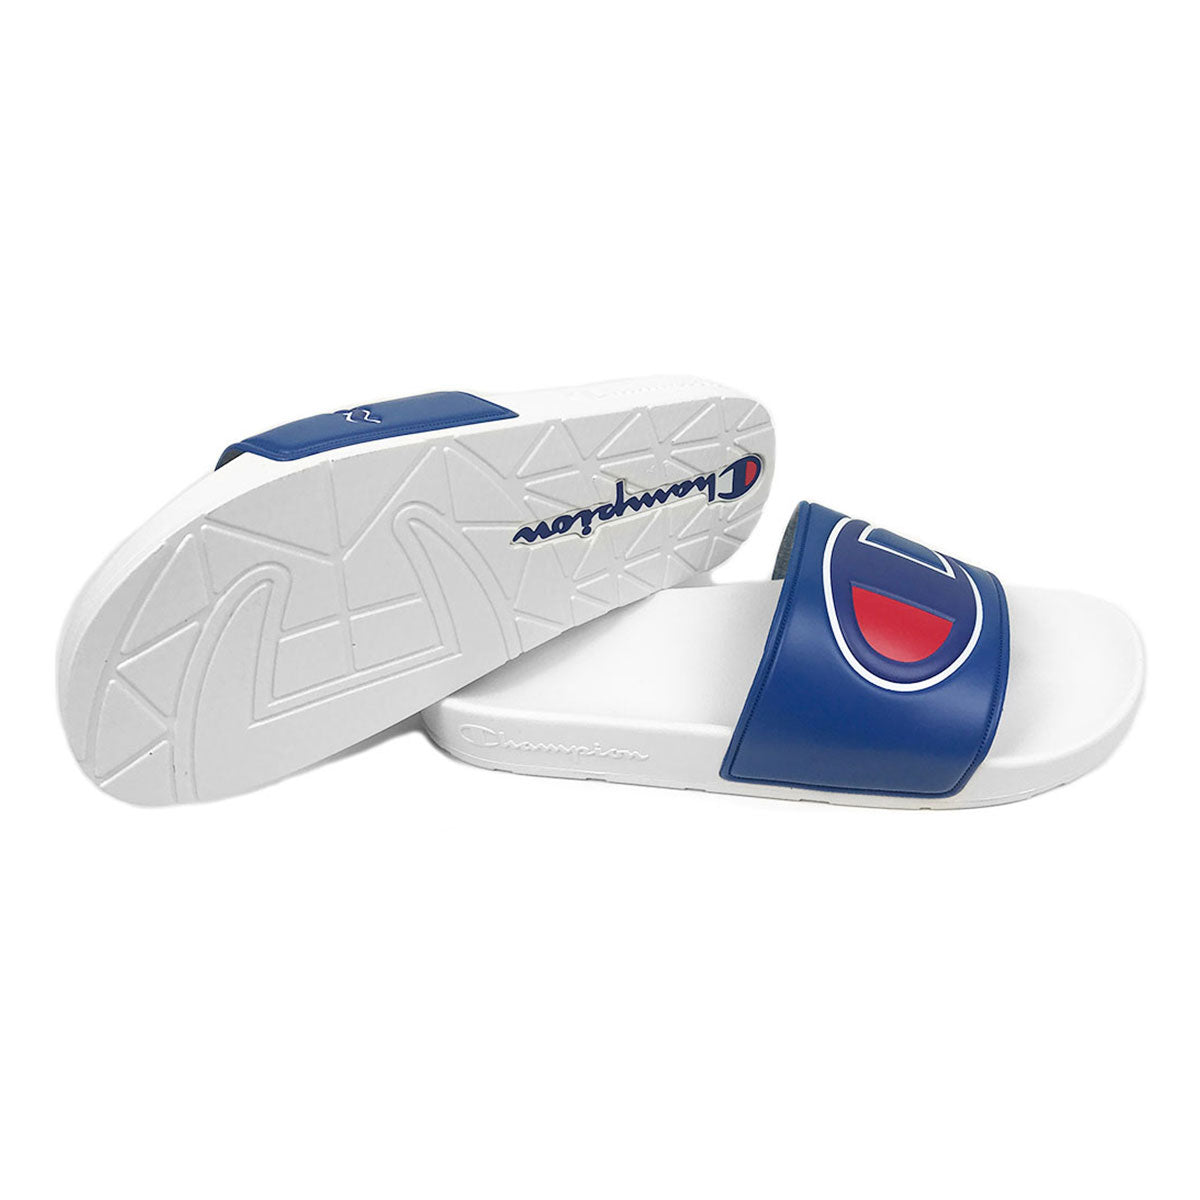 ffecd0afcde Champion Monogram Slides